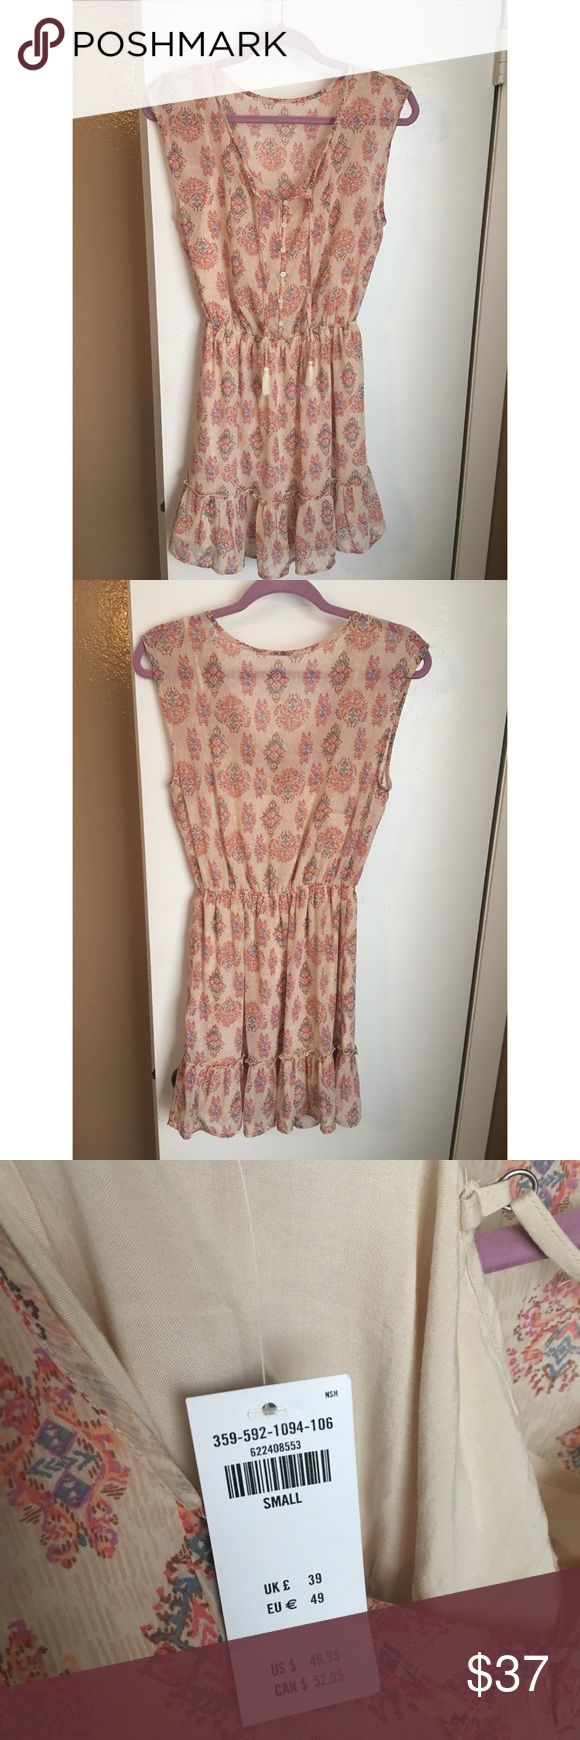 NWT Hollister Dress!! Brand new Hollister dress!! Beautiful sheet floral print, with elastic waist and ruffled bottom! Fully lined. Size S Hollister Dresses Mini